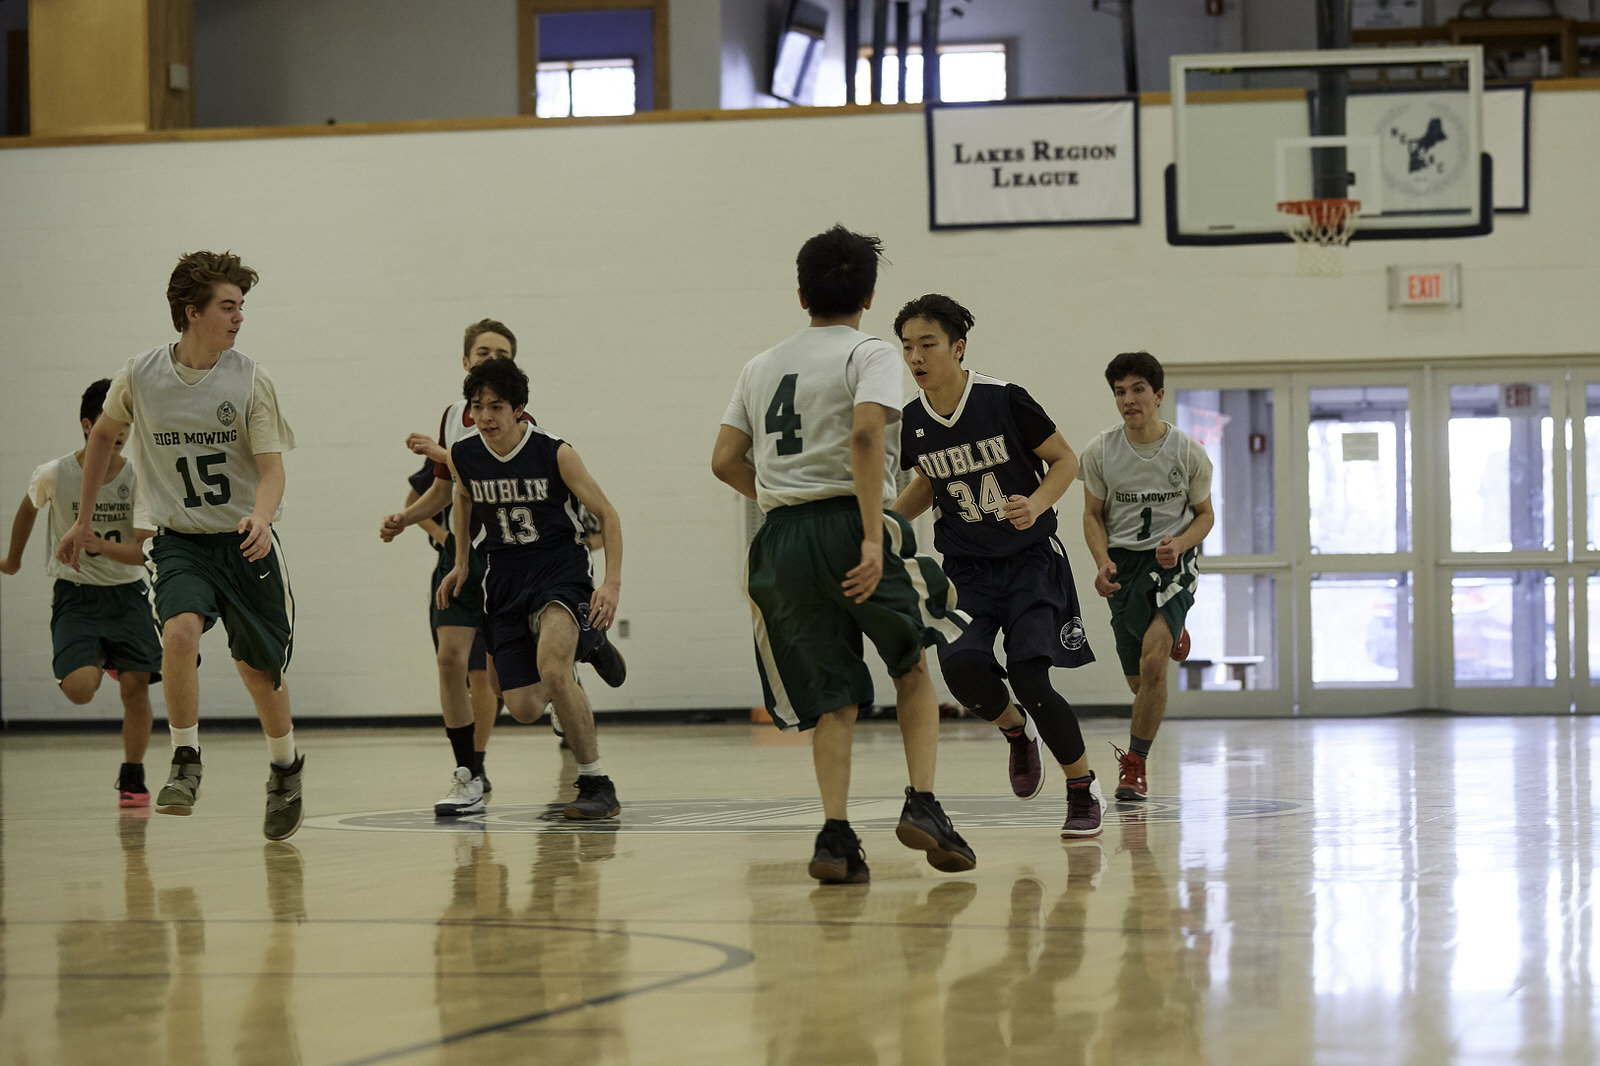 Dublin JV Boys Basketball vs High Mowing School - Jan 26 2019 - 0207.jpg